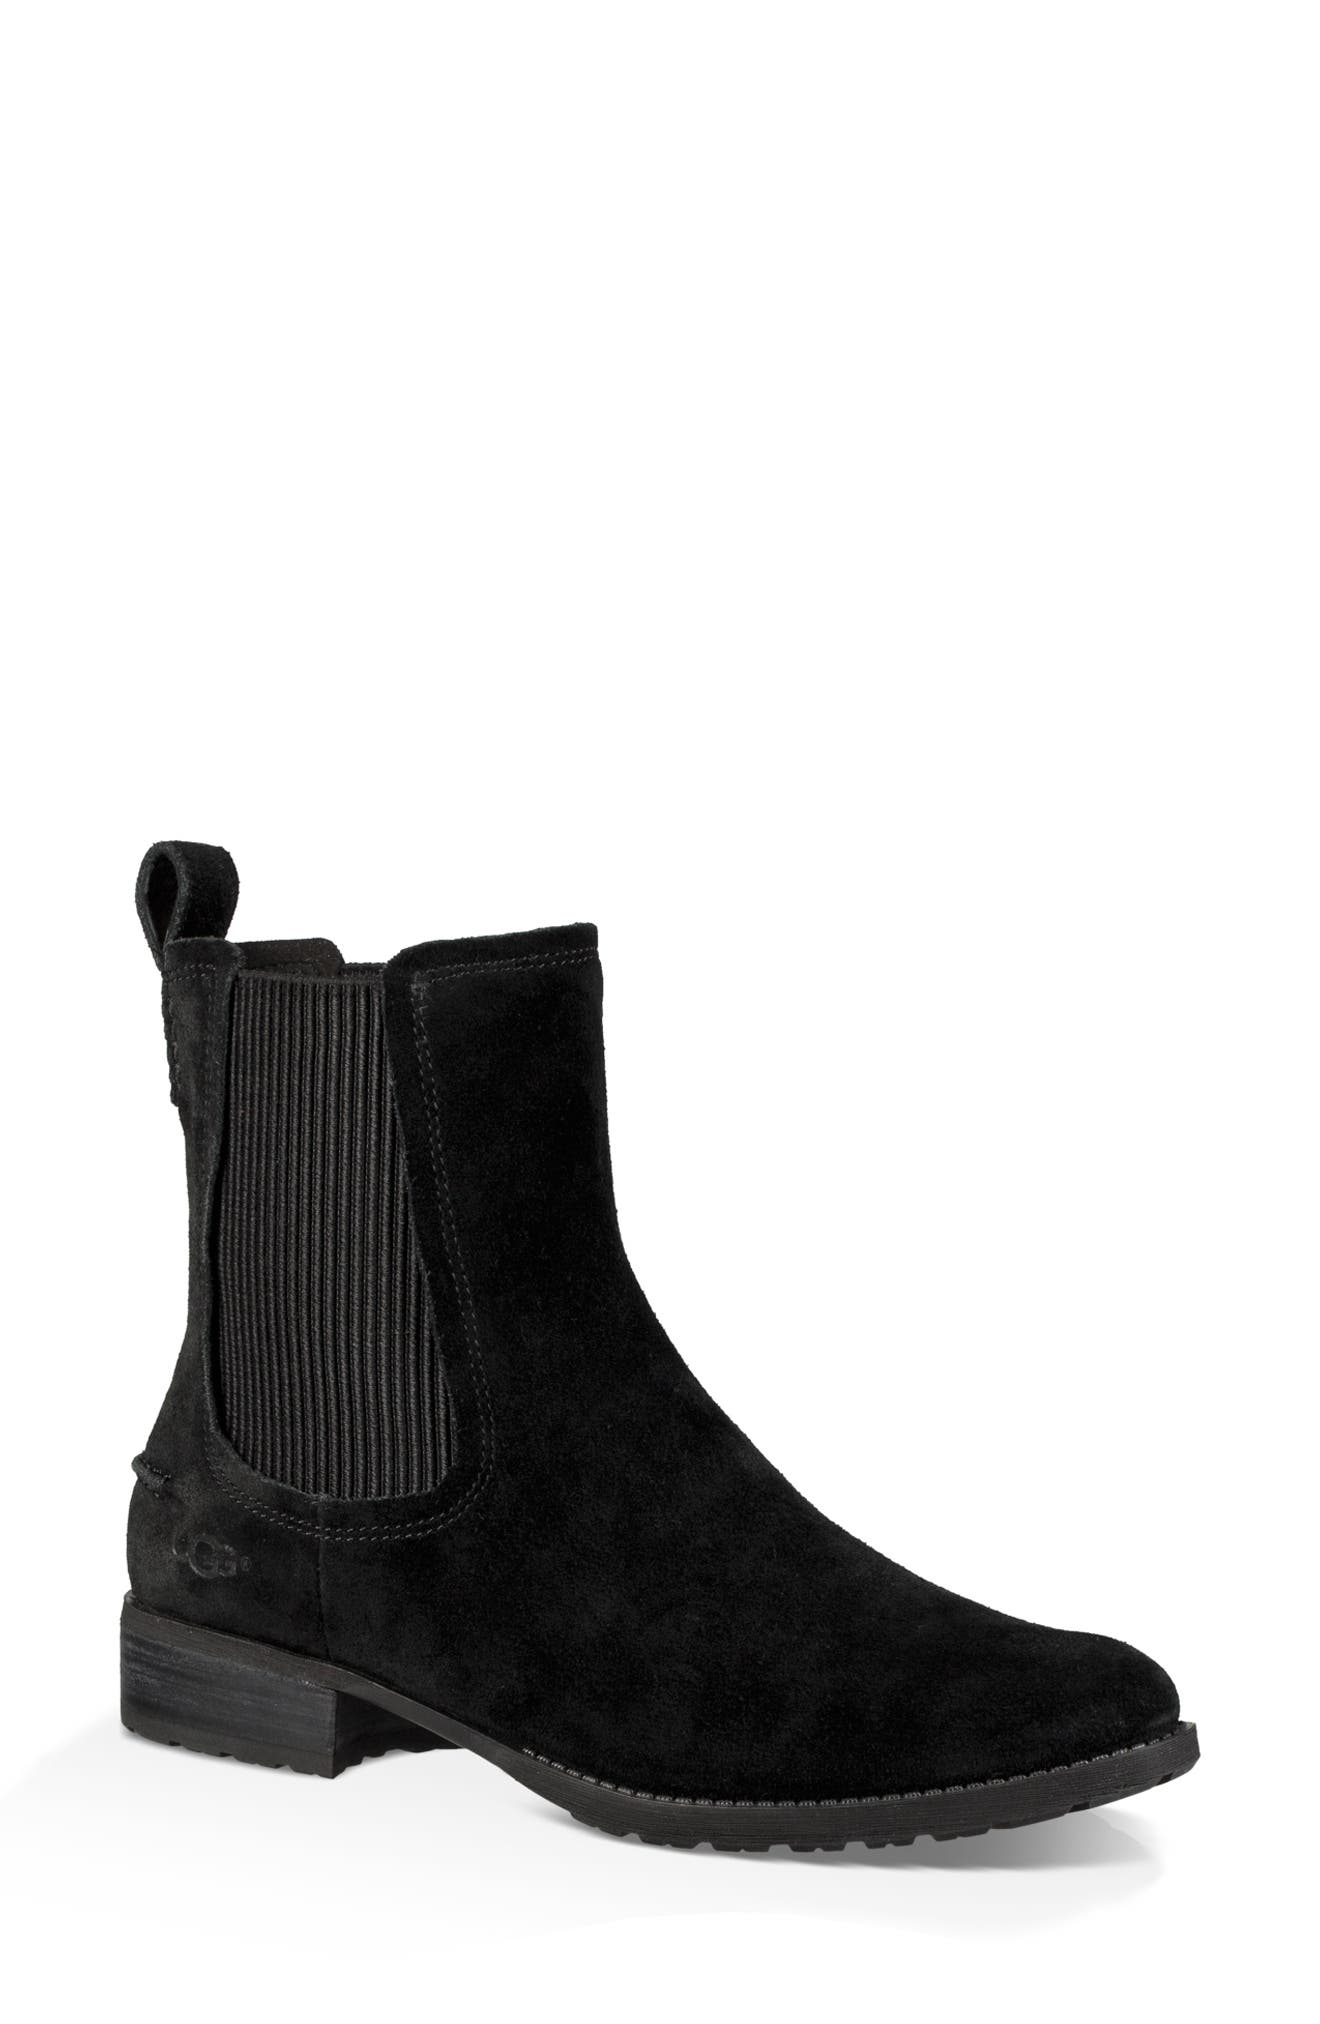 Hillhurst Chelsea Boot,                         Main,                         color, BLACK SUEDE